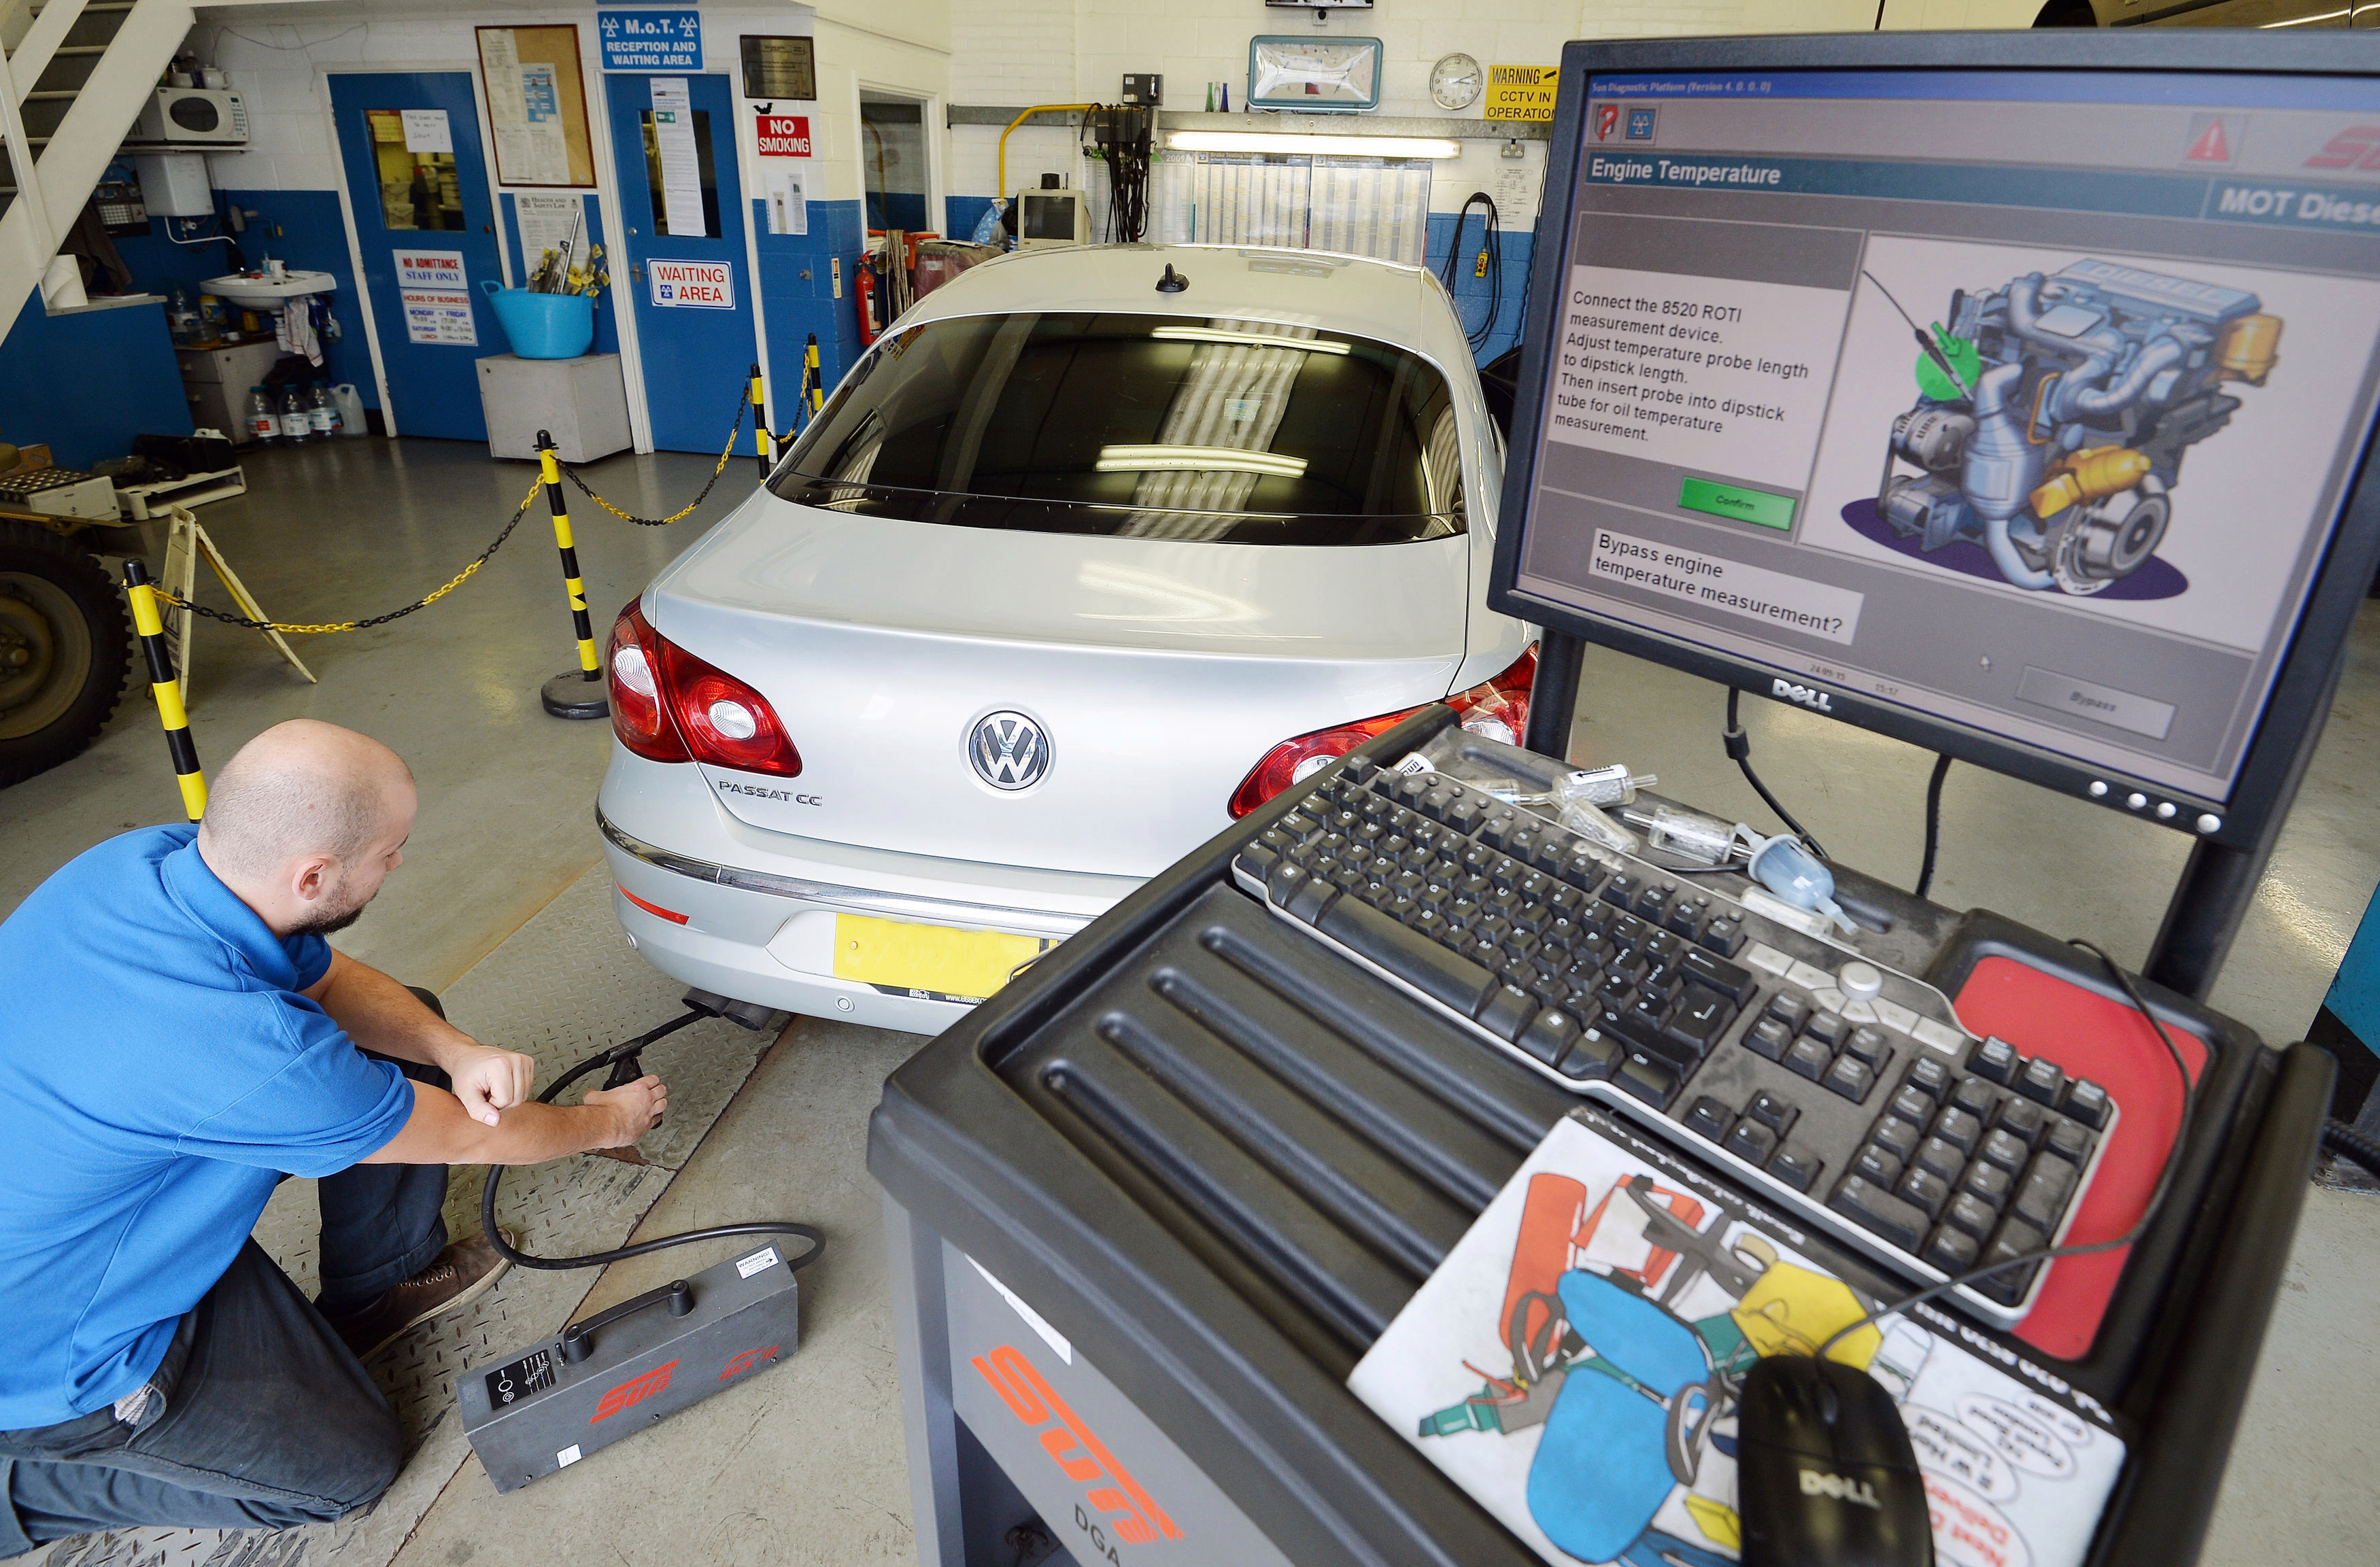 Get the best deal for your MOT